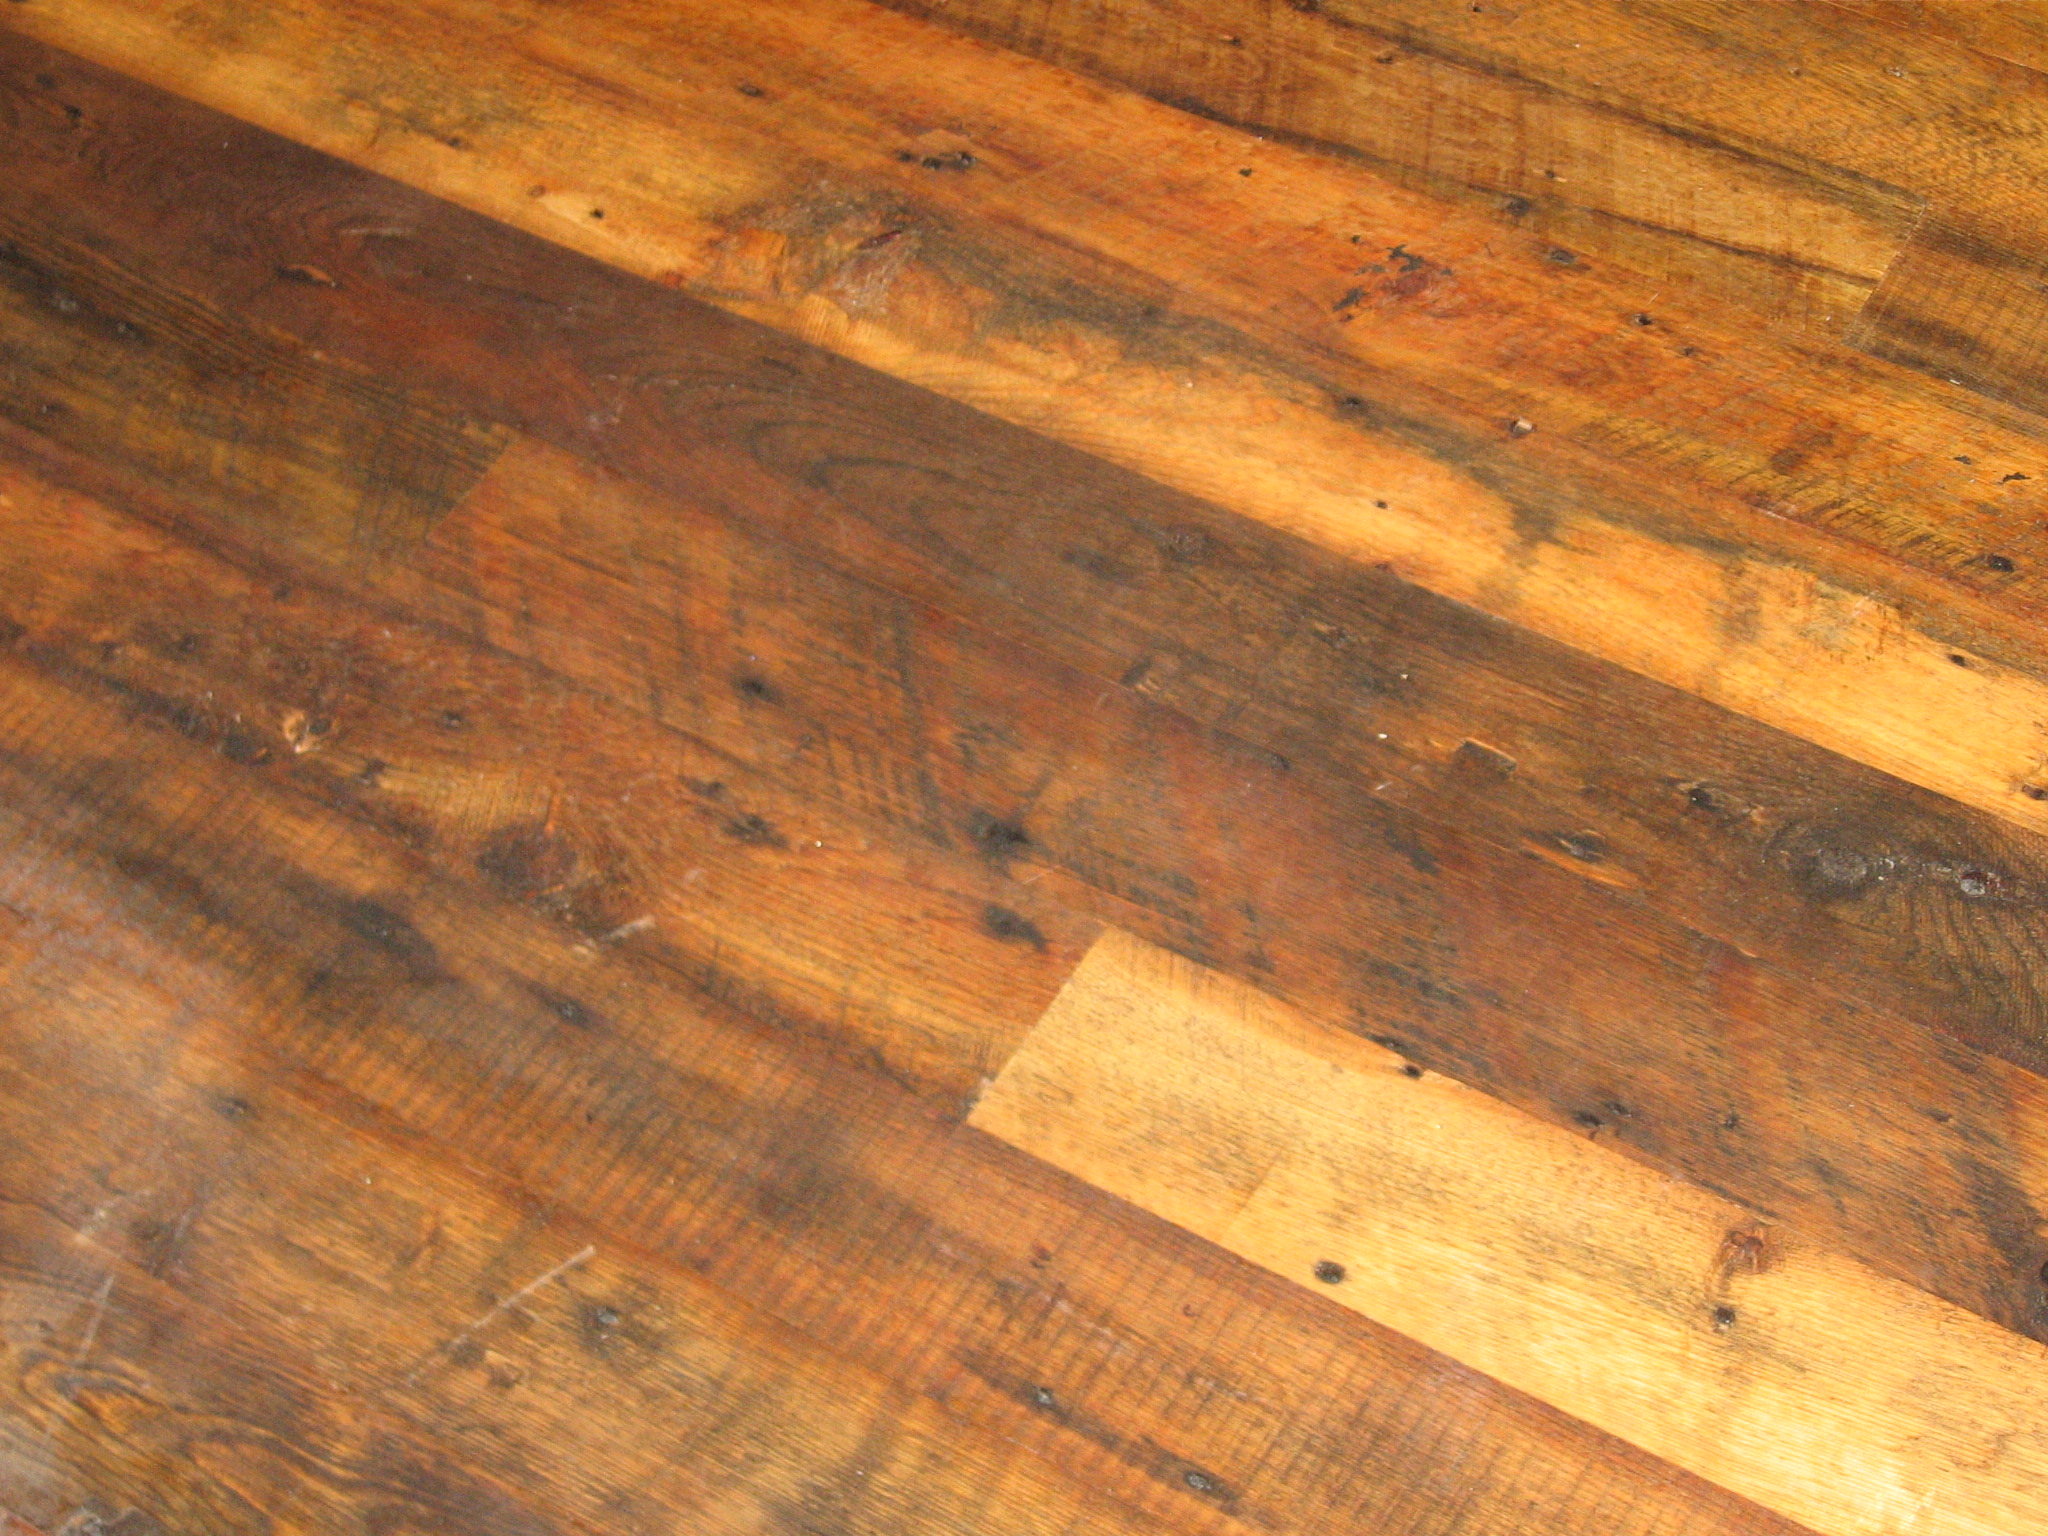 Hardwood floor patterns and reclaimed hardwoods for Recycled hardwood floors